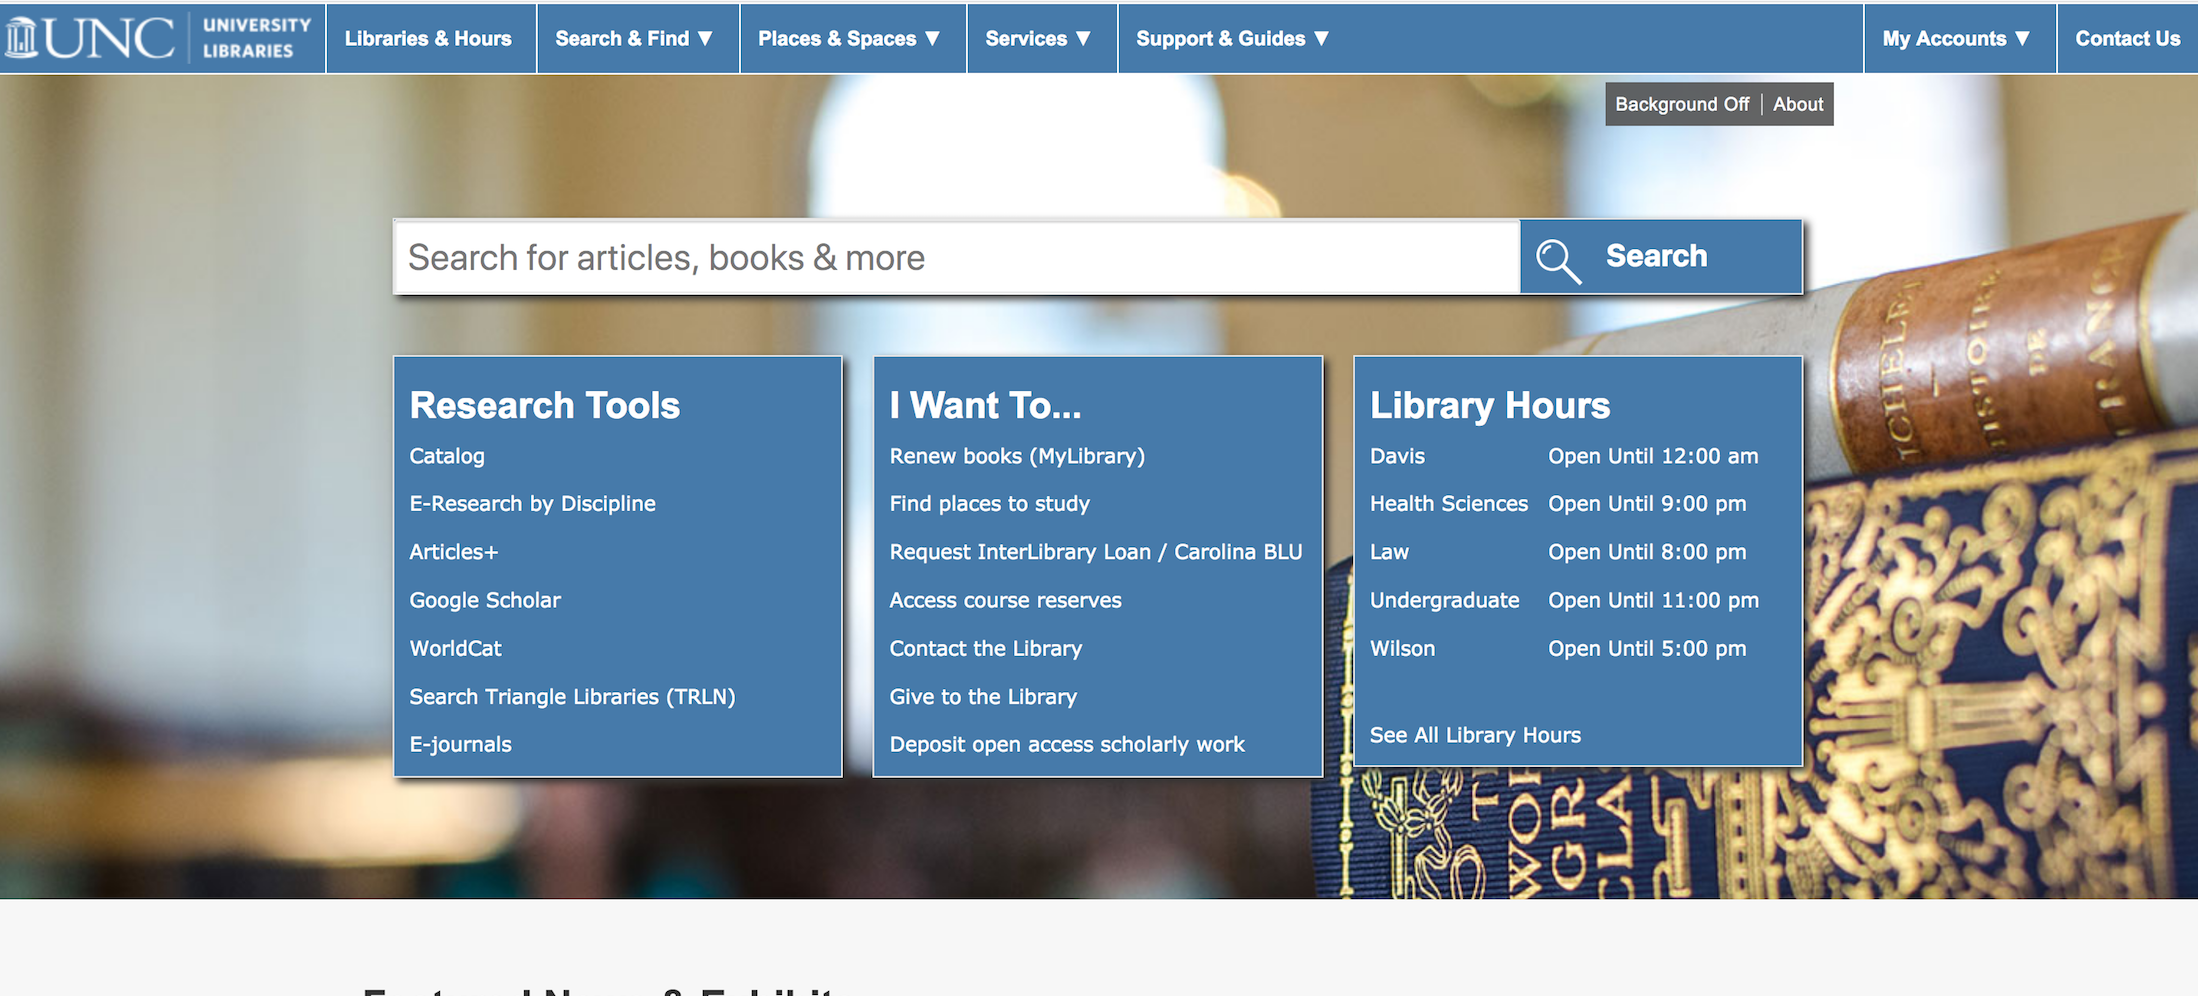 UNC Chapel Hill Libraries home page